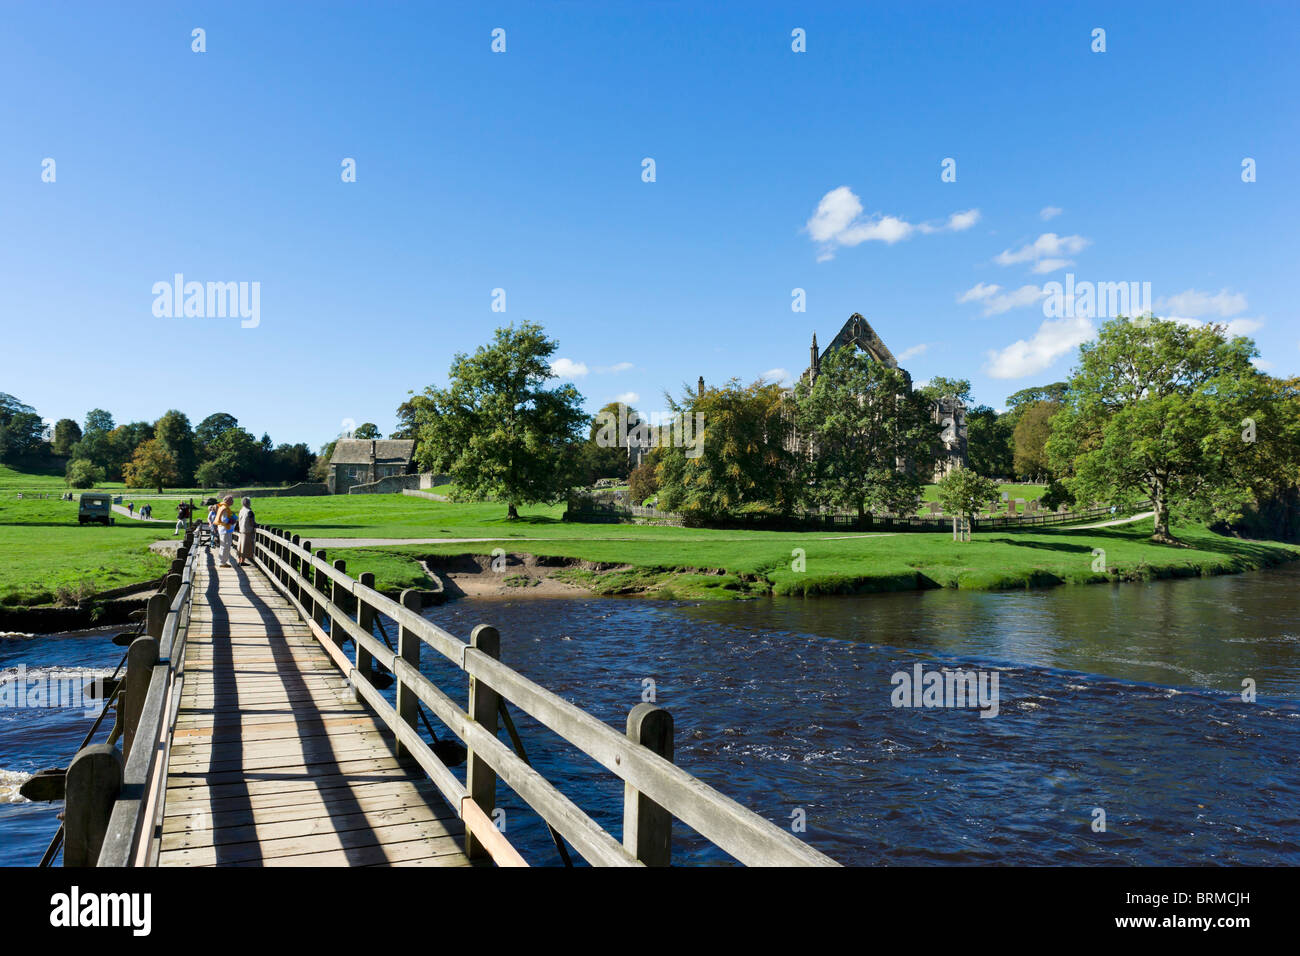 Bolton Priory viewed from the bridge over the River Wharfe, Bolton Abbey, Wharfedale, Yorkshire Dales, North Yorkshire, - Stock Image